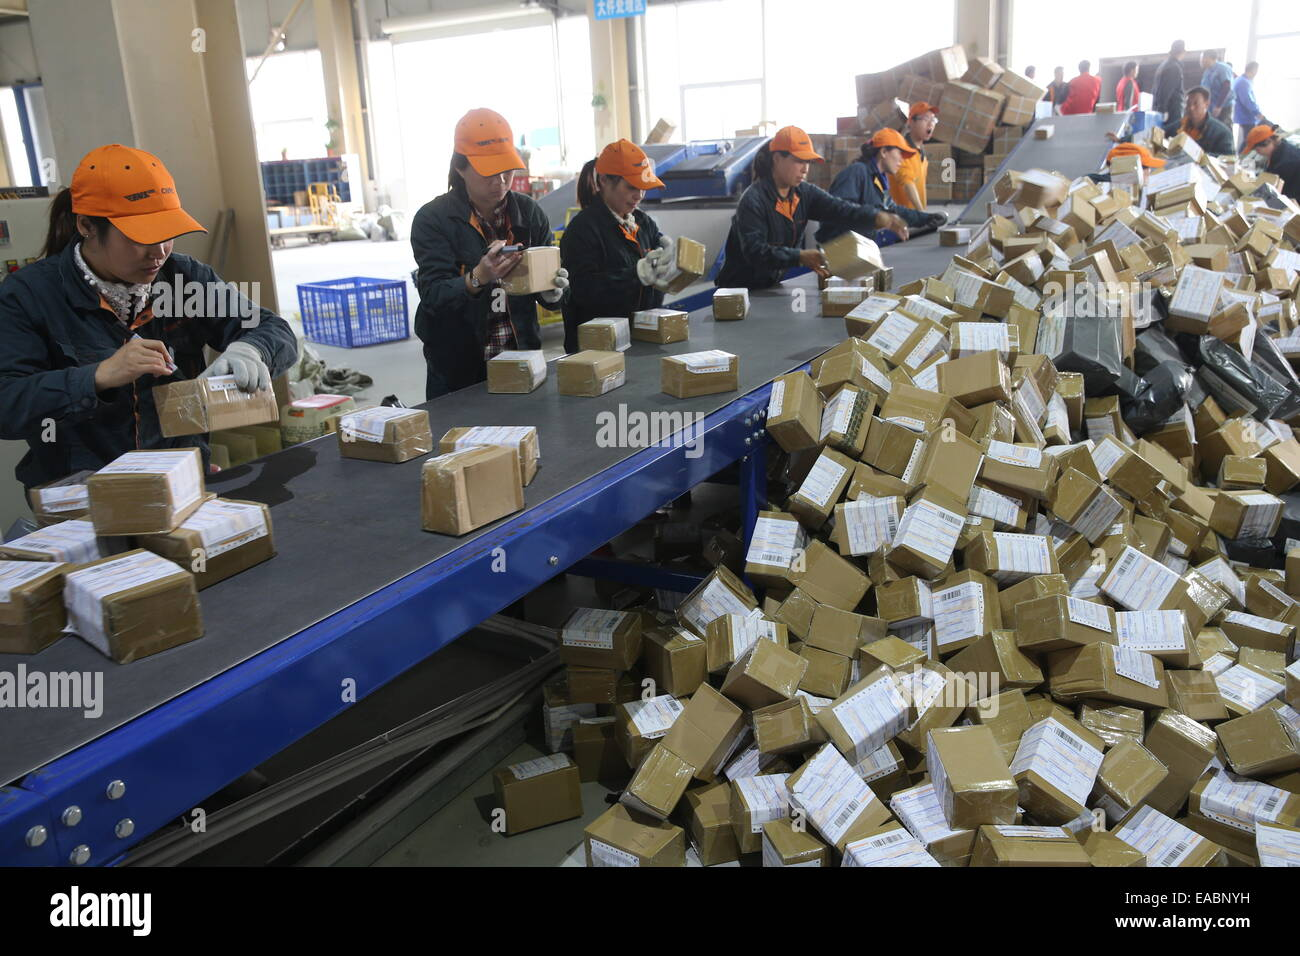 Xiangyang. 11th Nov, 2014. Workers sort out packages in a dispatching center of China Postal in Xiangyang, central - Stock Image